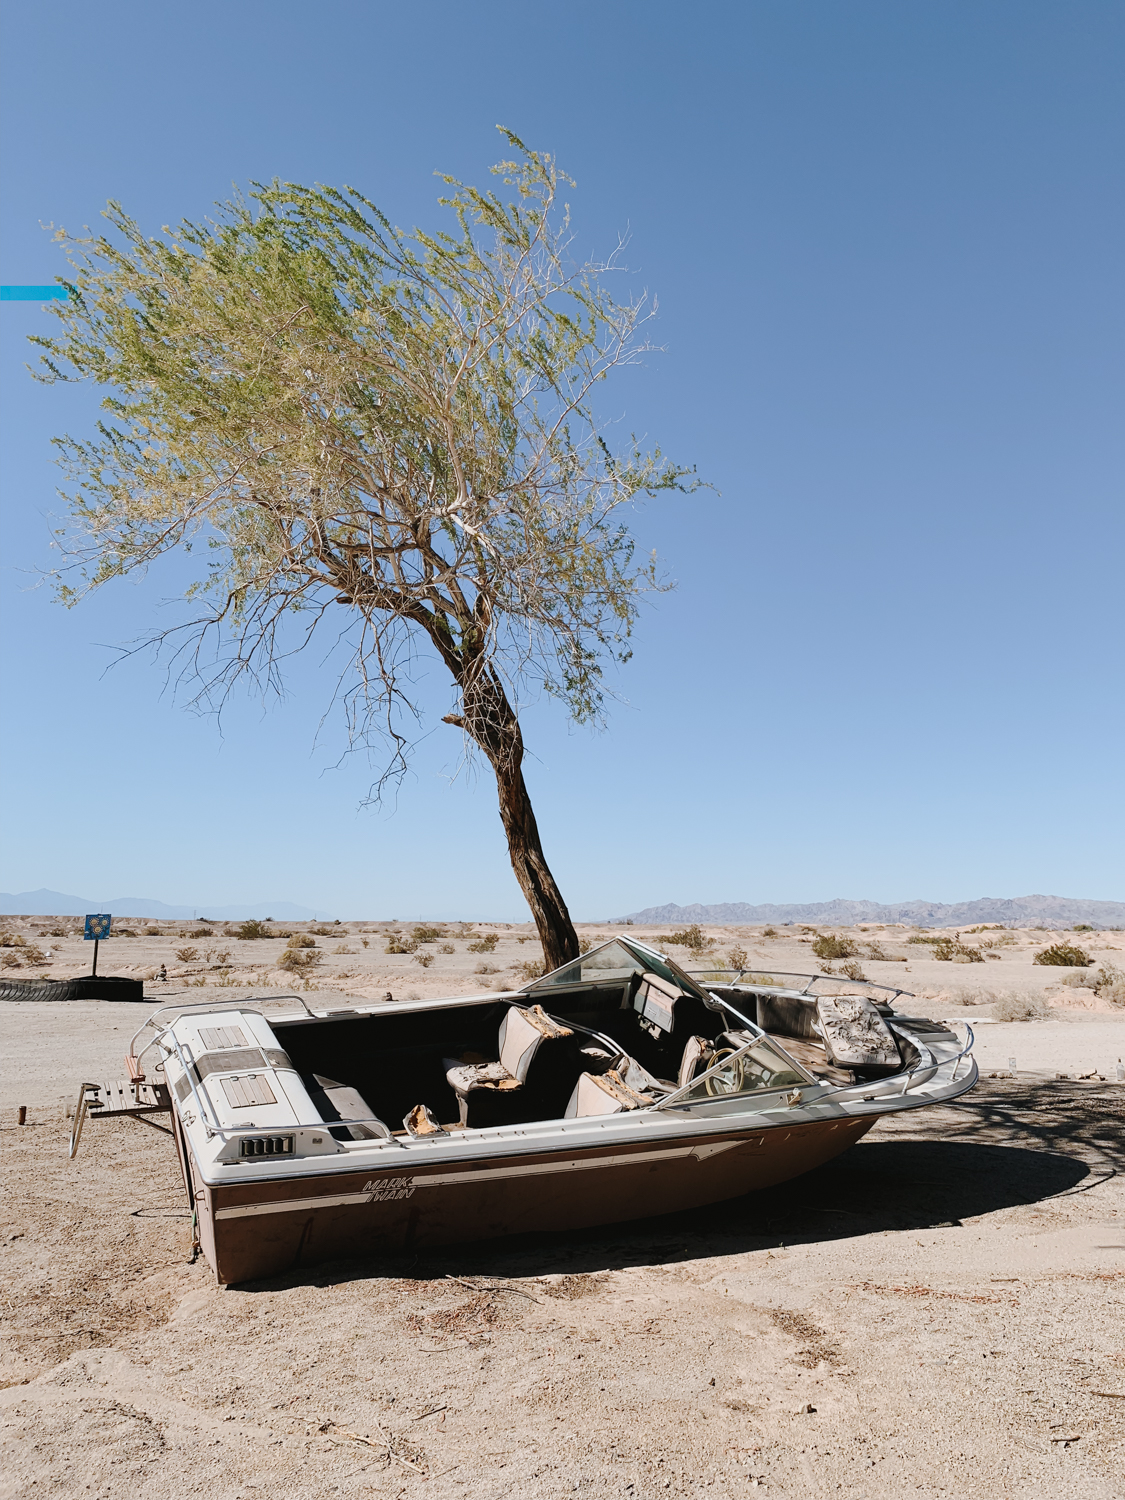 east_jesus_abandoned_boat_southern_california.jpg